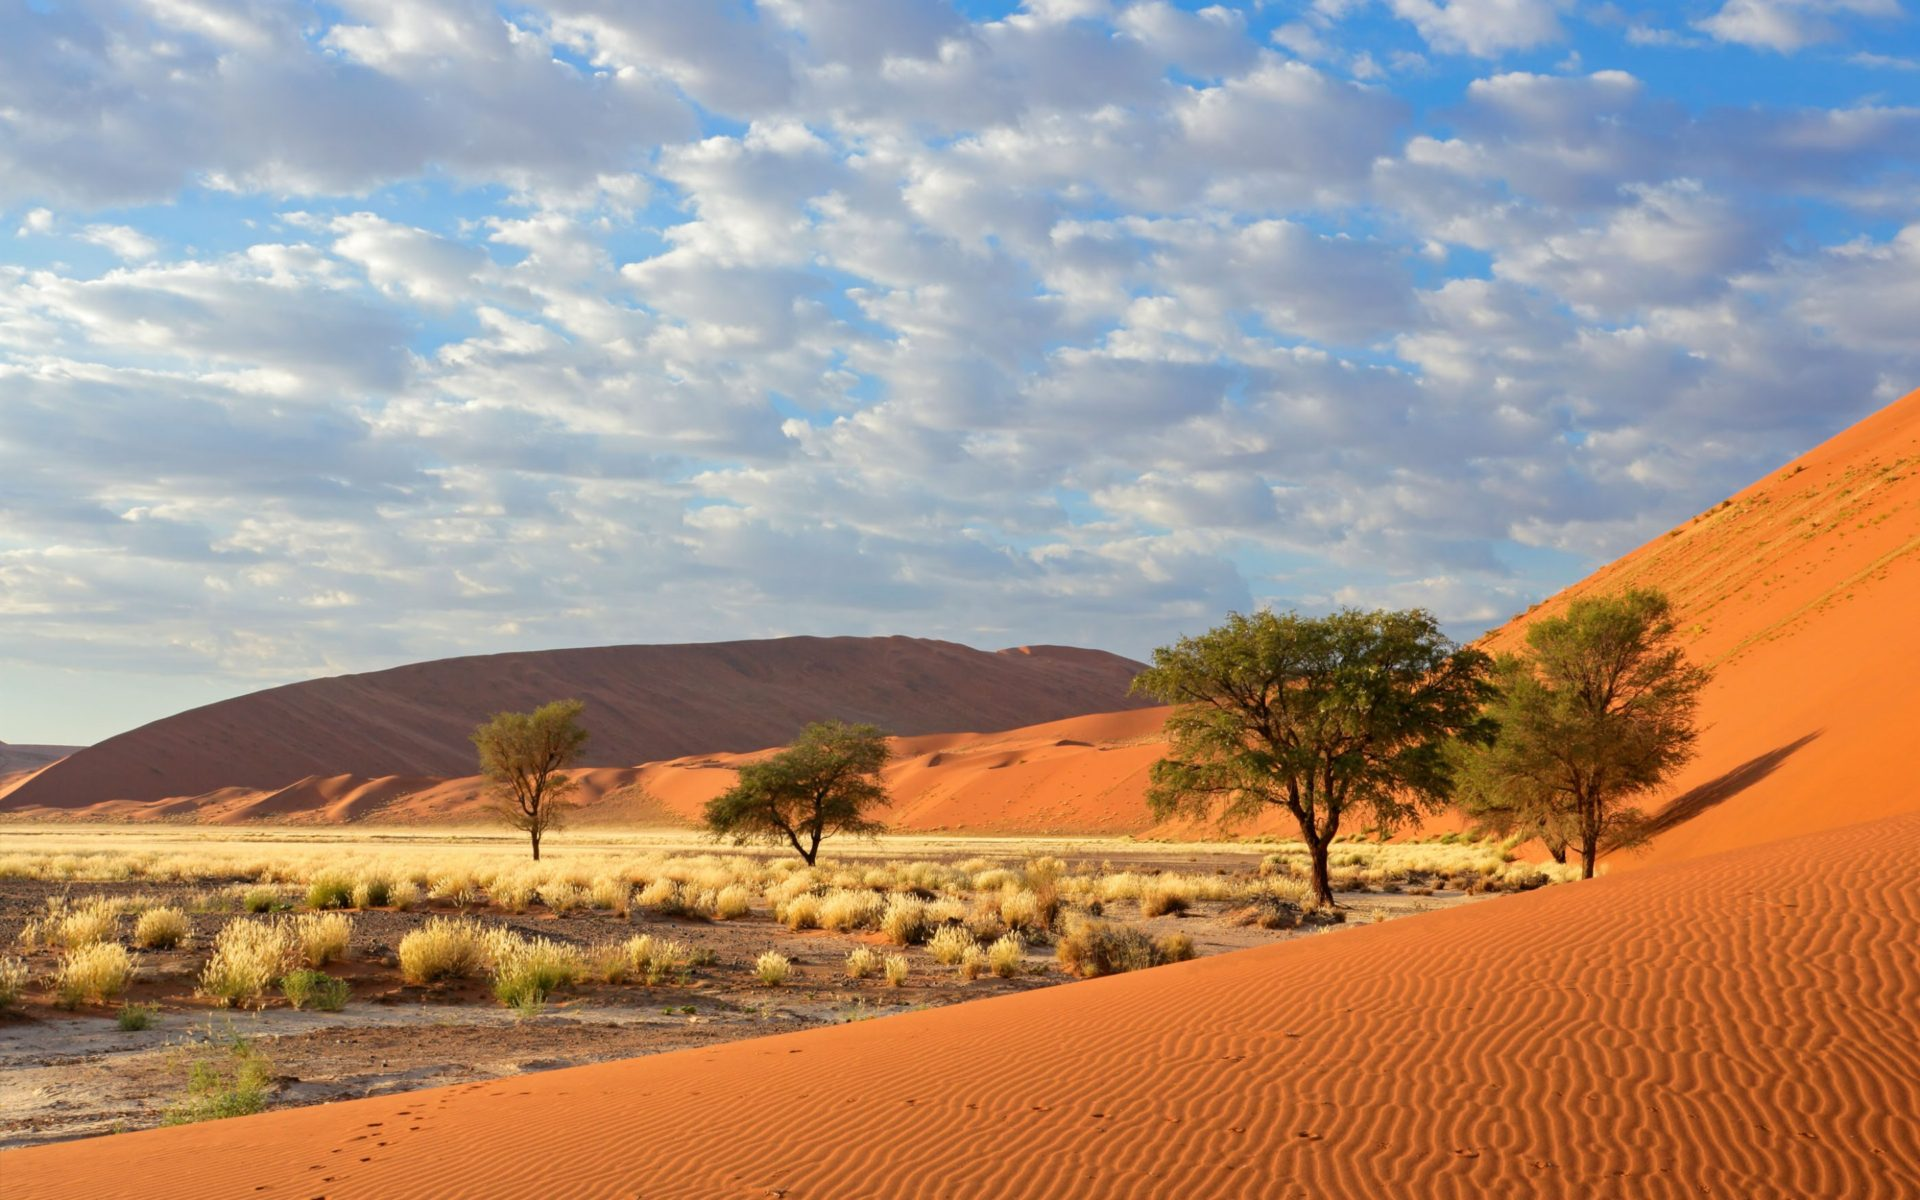 Summer Fall Desktop Wallpaper Sossusvlei Namib Naukluft National Park Namibia 1800x2880